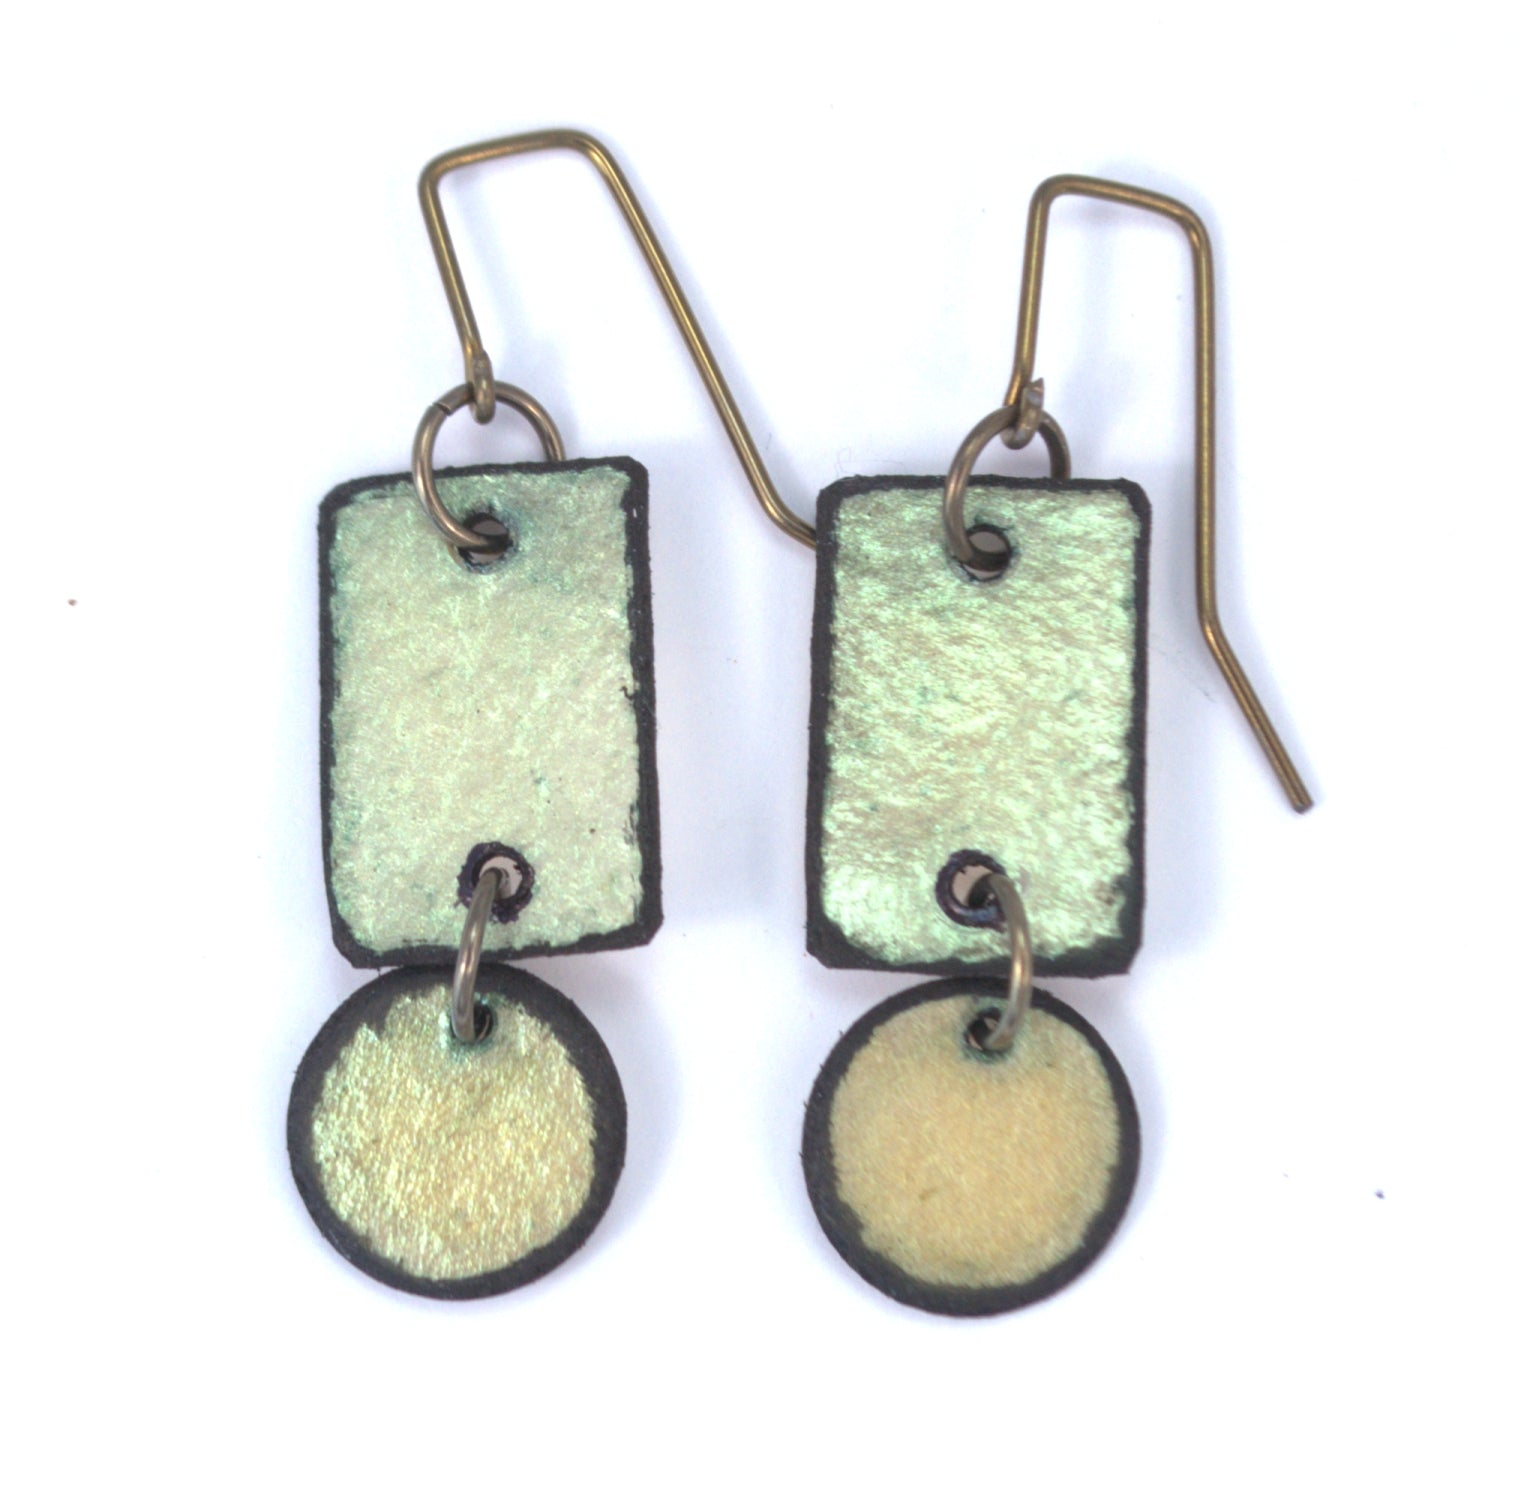 Lazy Circle earrings made from rawhide. Iridescent green earrings, hypoallergenic ear wires